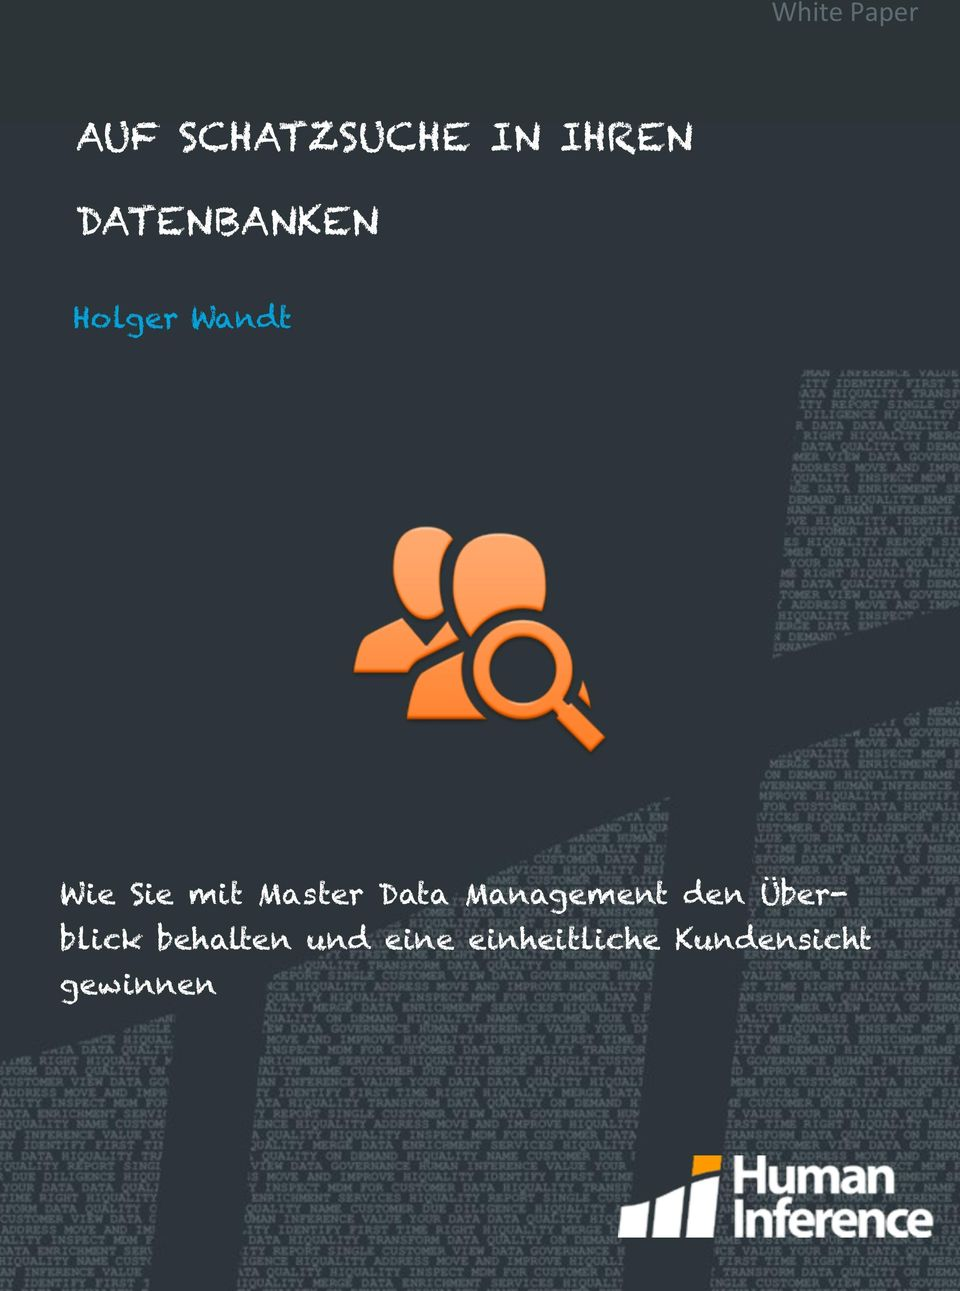 Master Data Management den Überblick